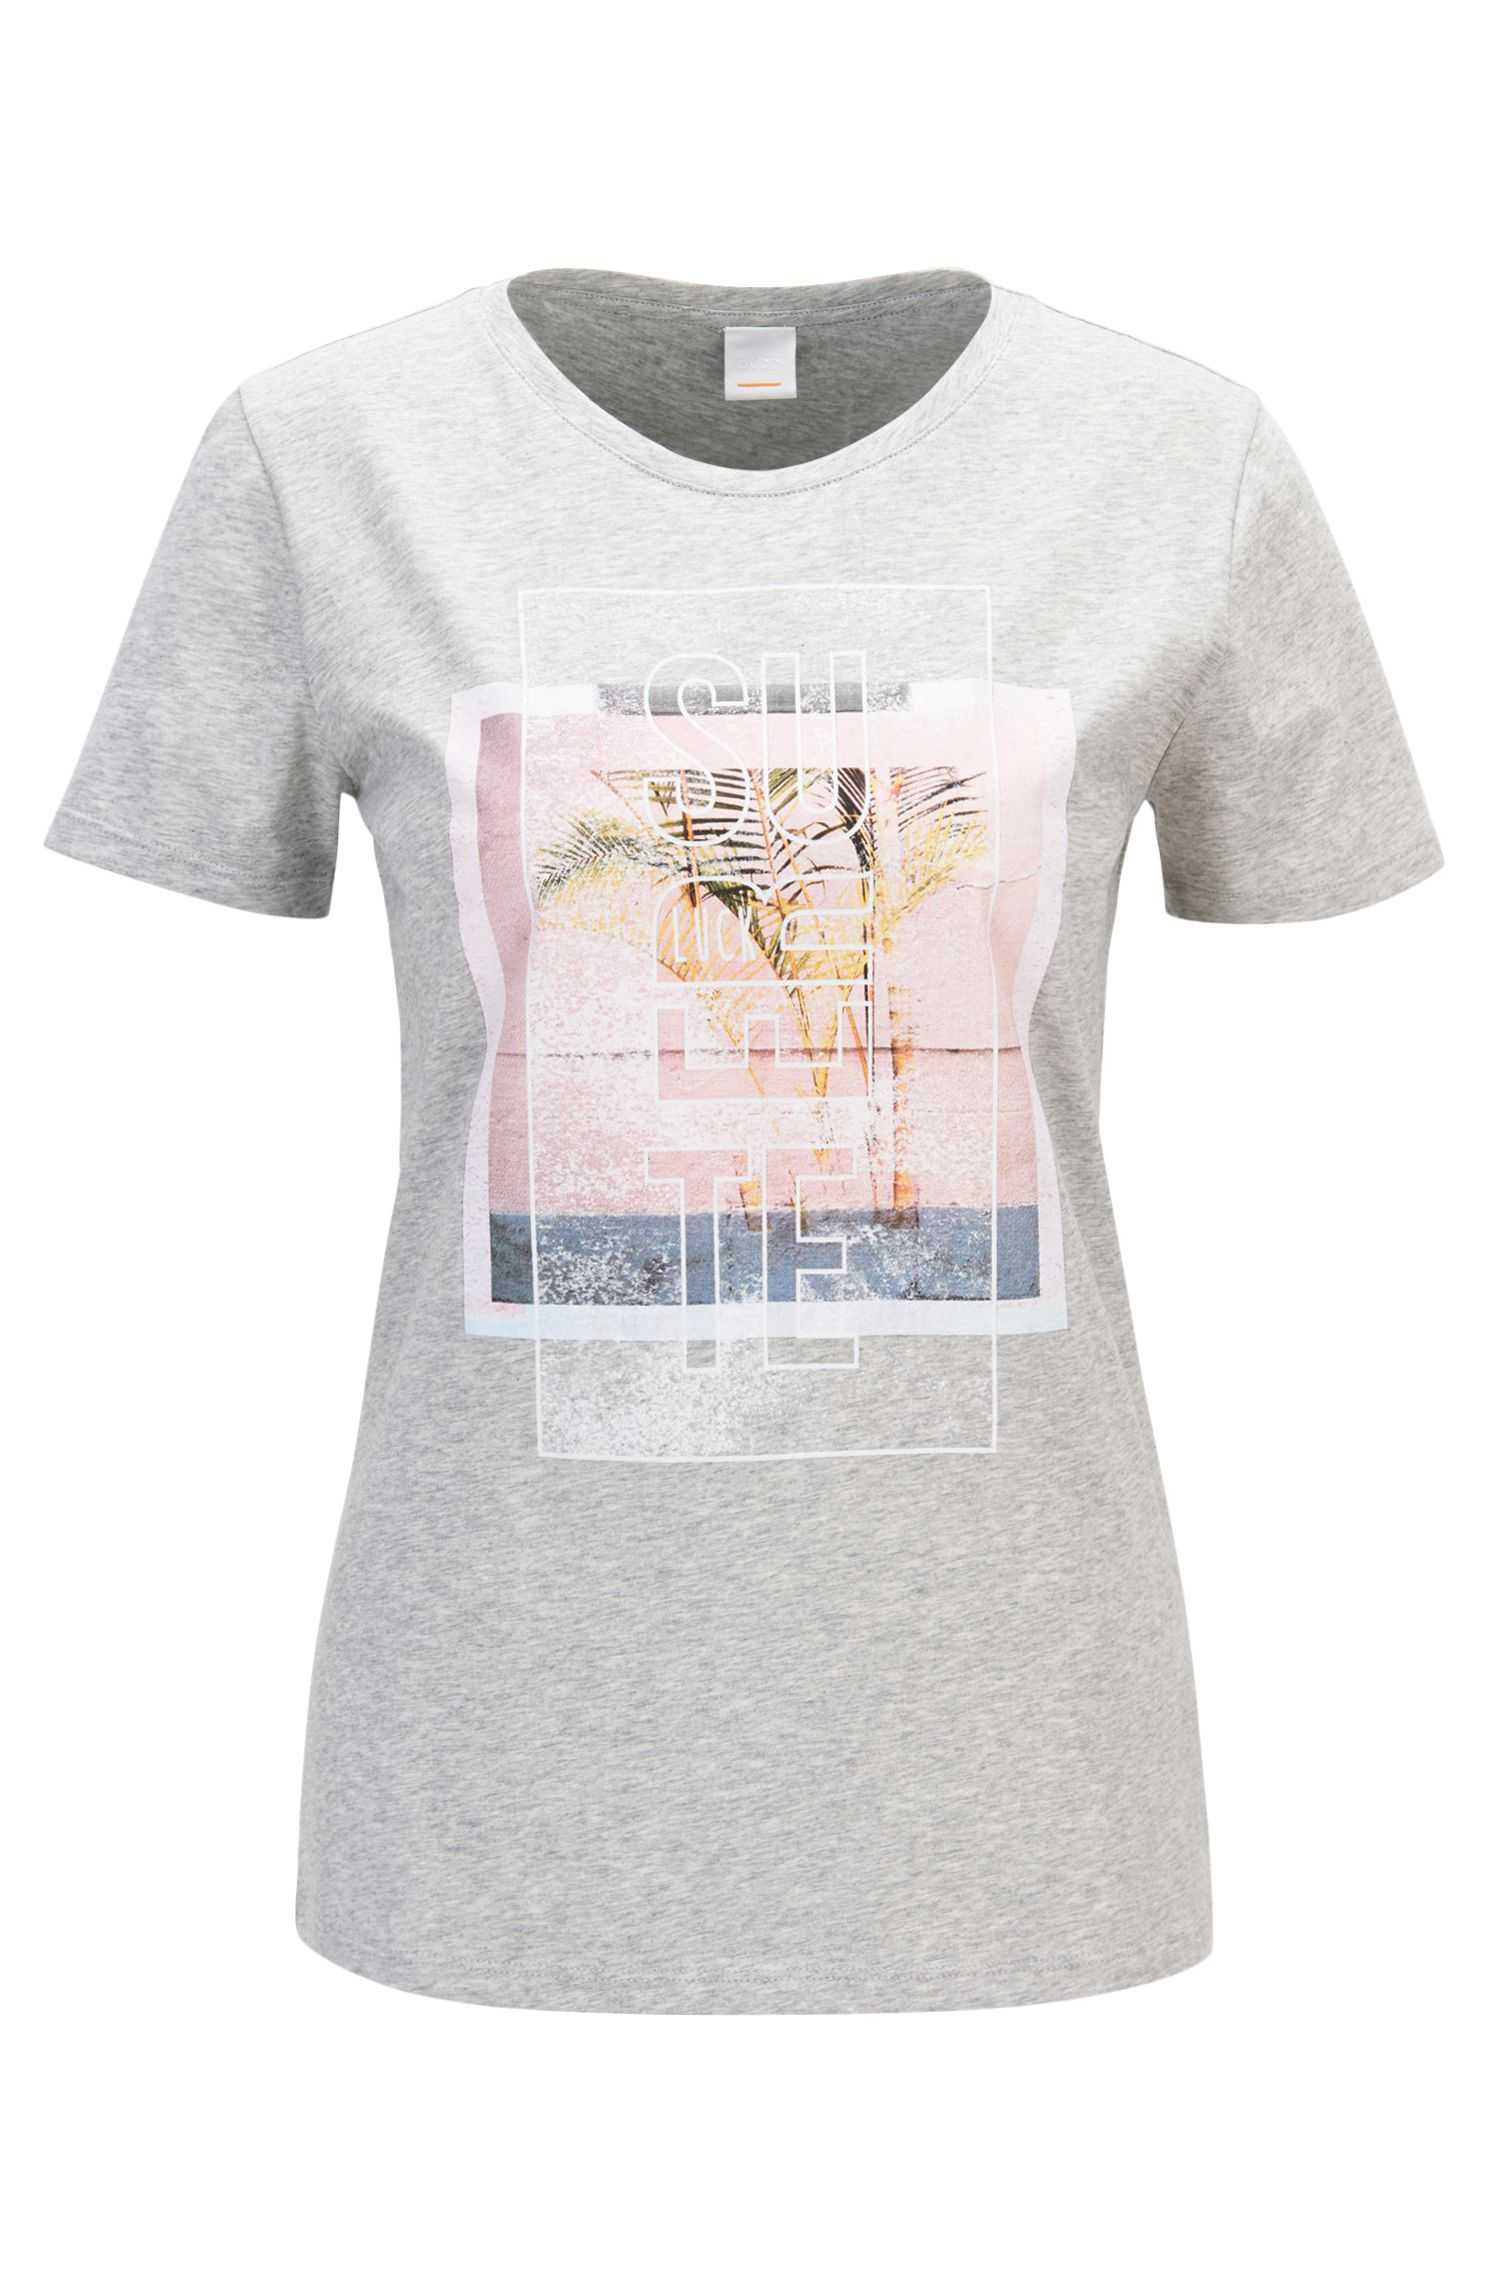 Mixed graphic-print T-shirt in washed cotton jersey